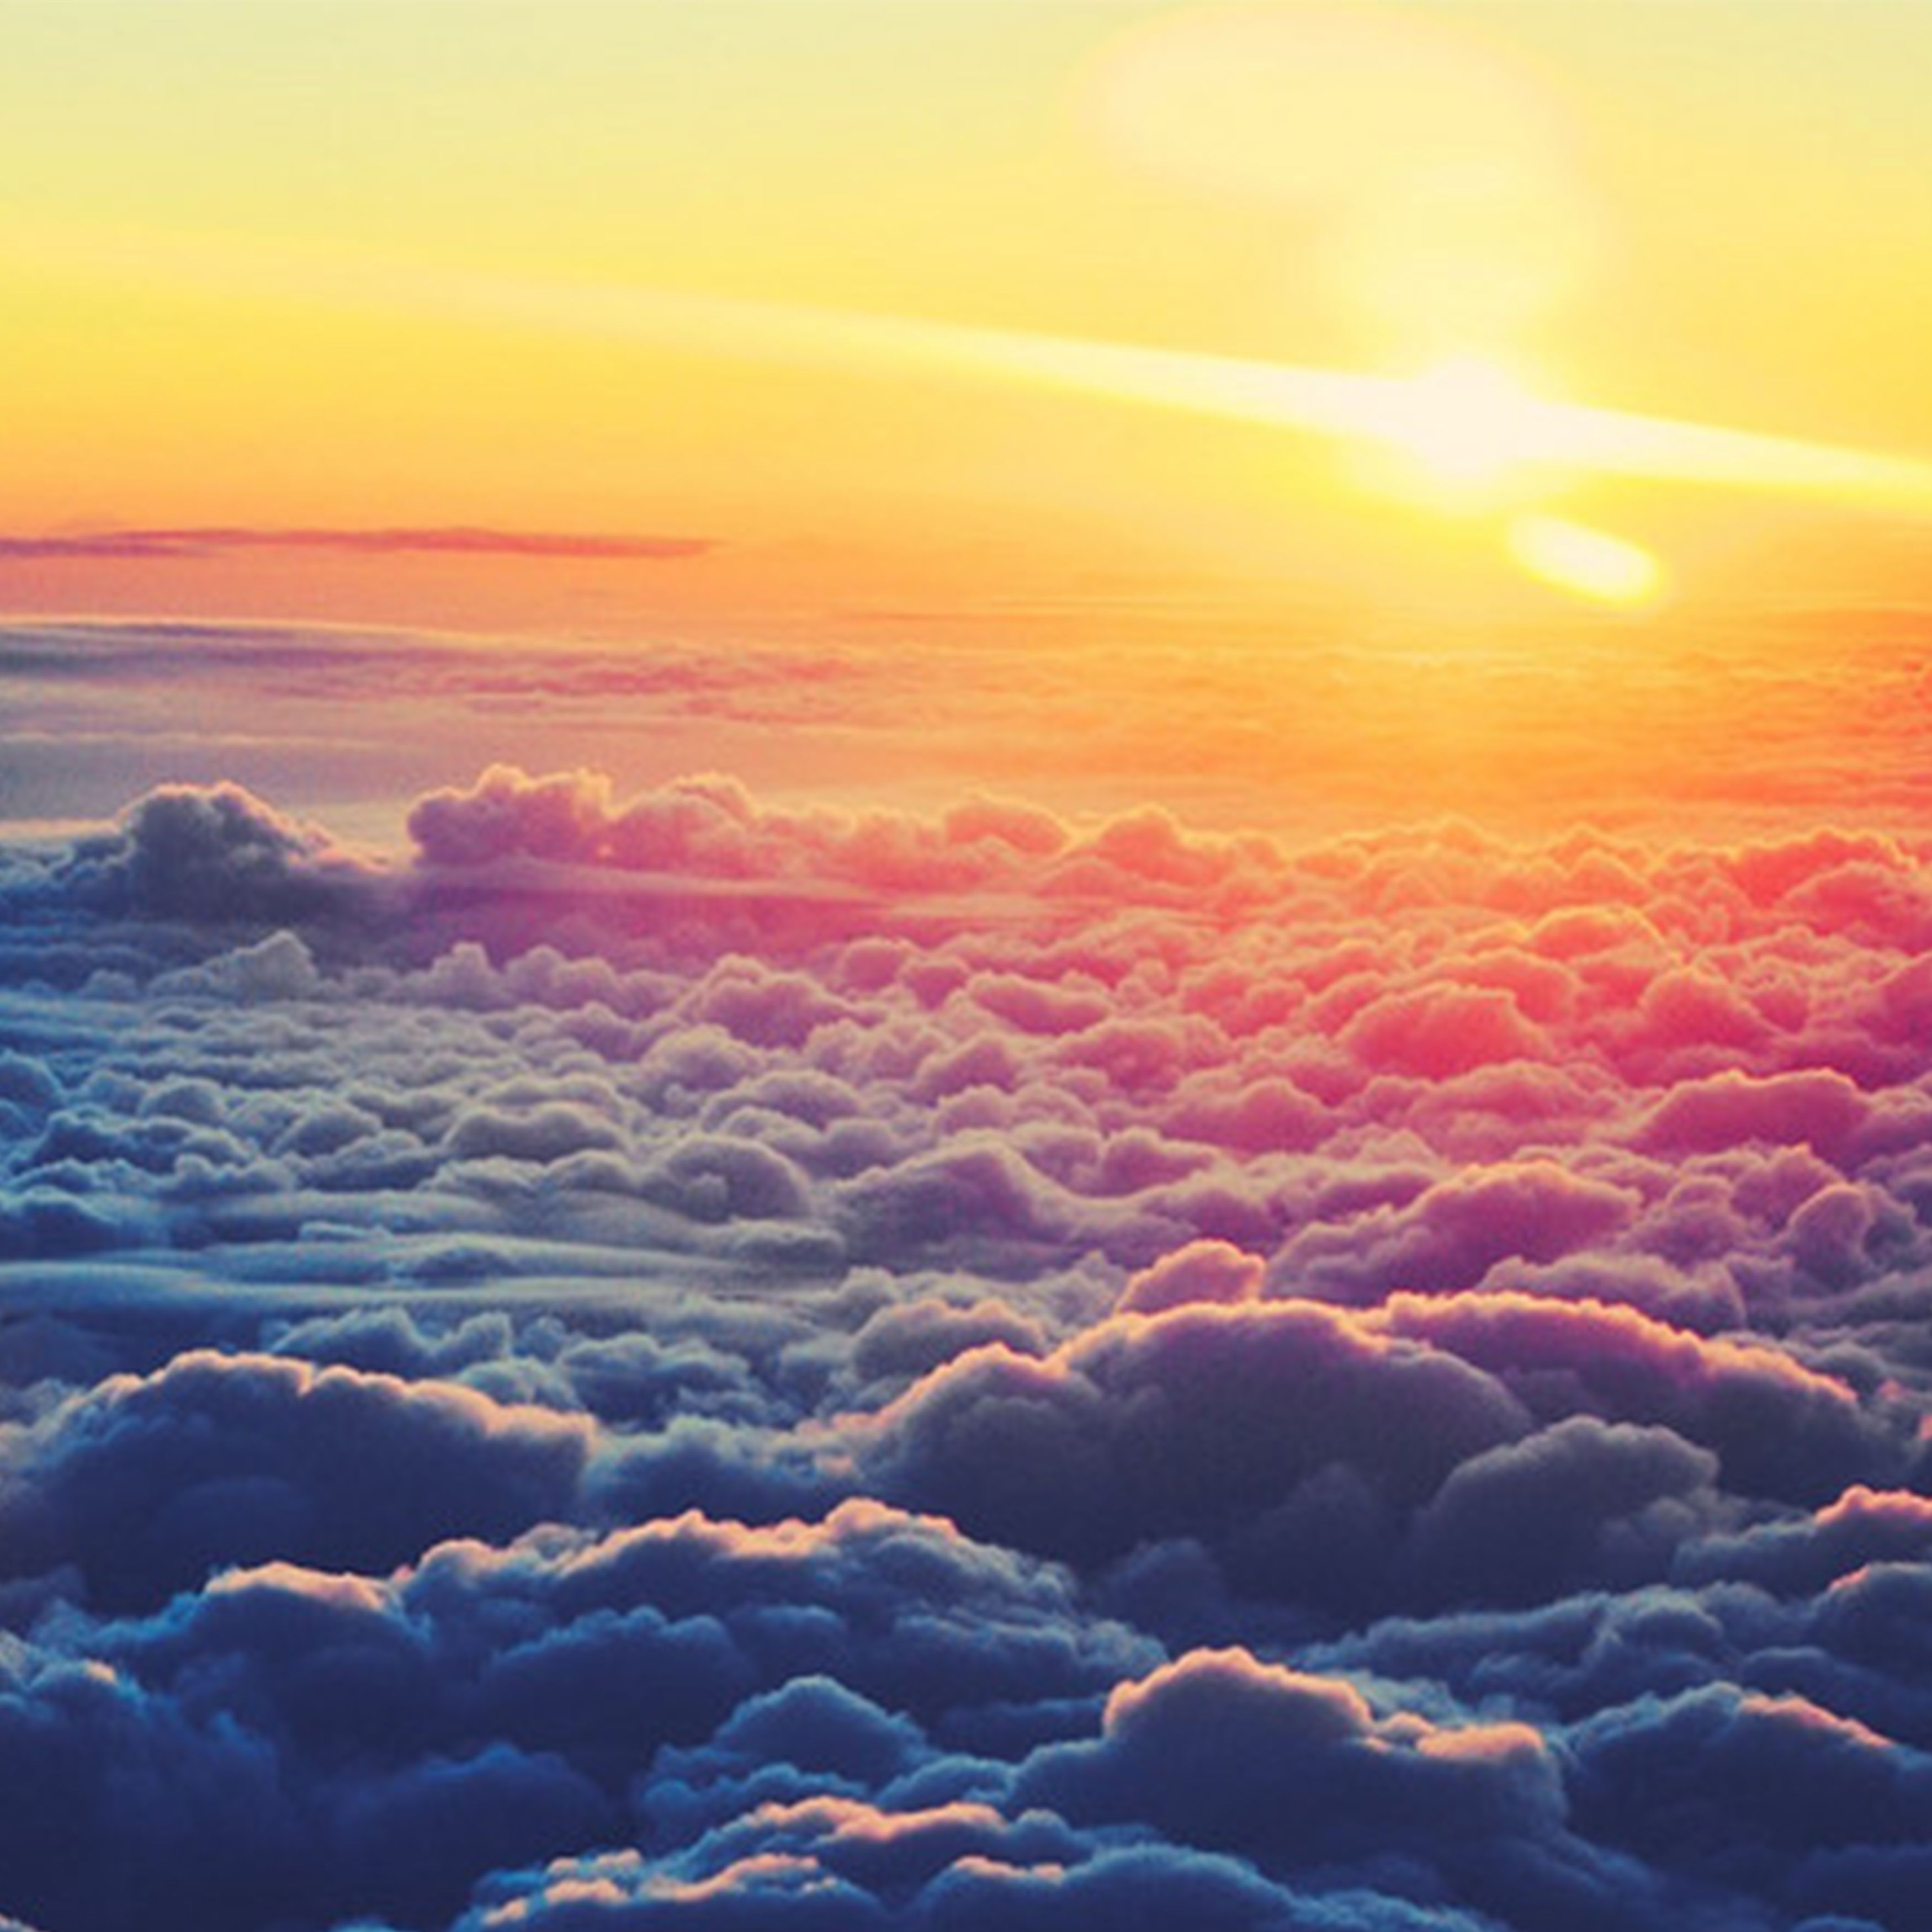 sunset clouds background in 2020 clouds above the clouds sky and clouds sunset clouds background in 2020